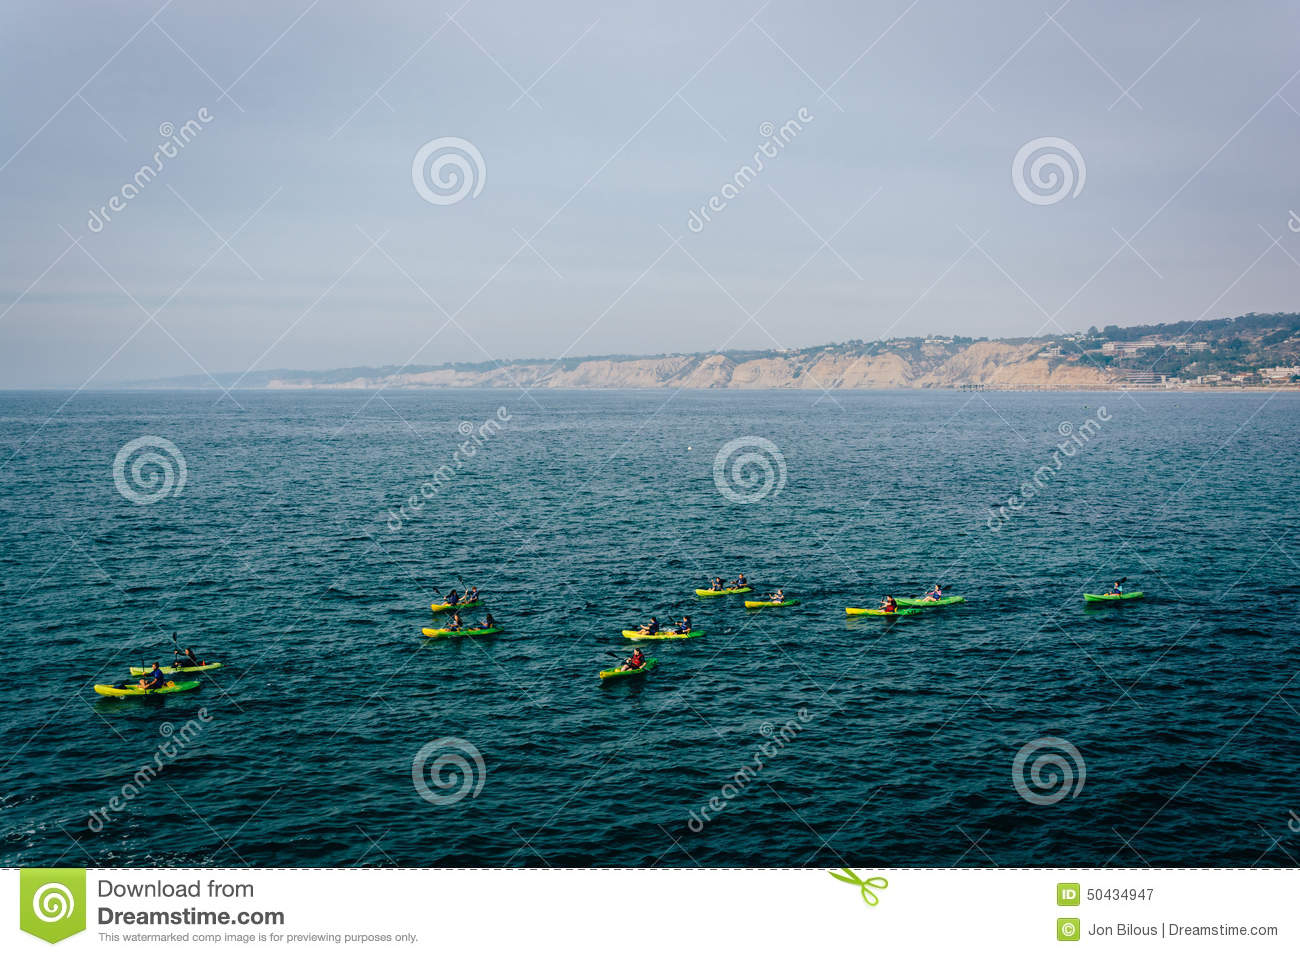 Kayakers in the Pacific Ocean, seen from La Jolla, California.